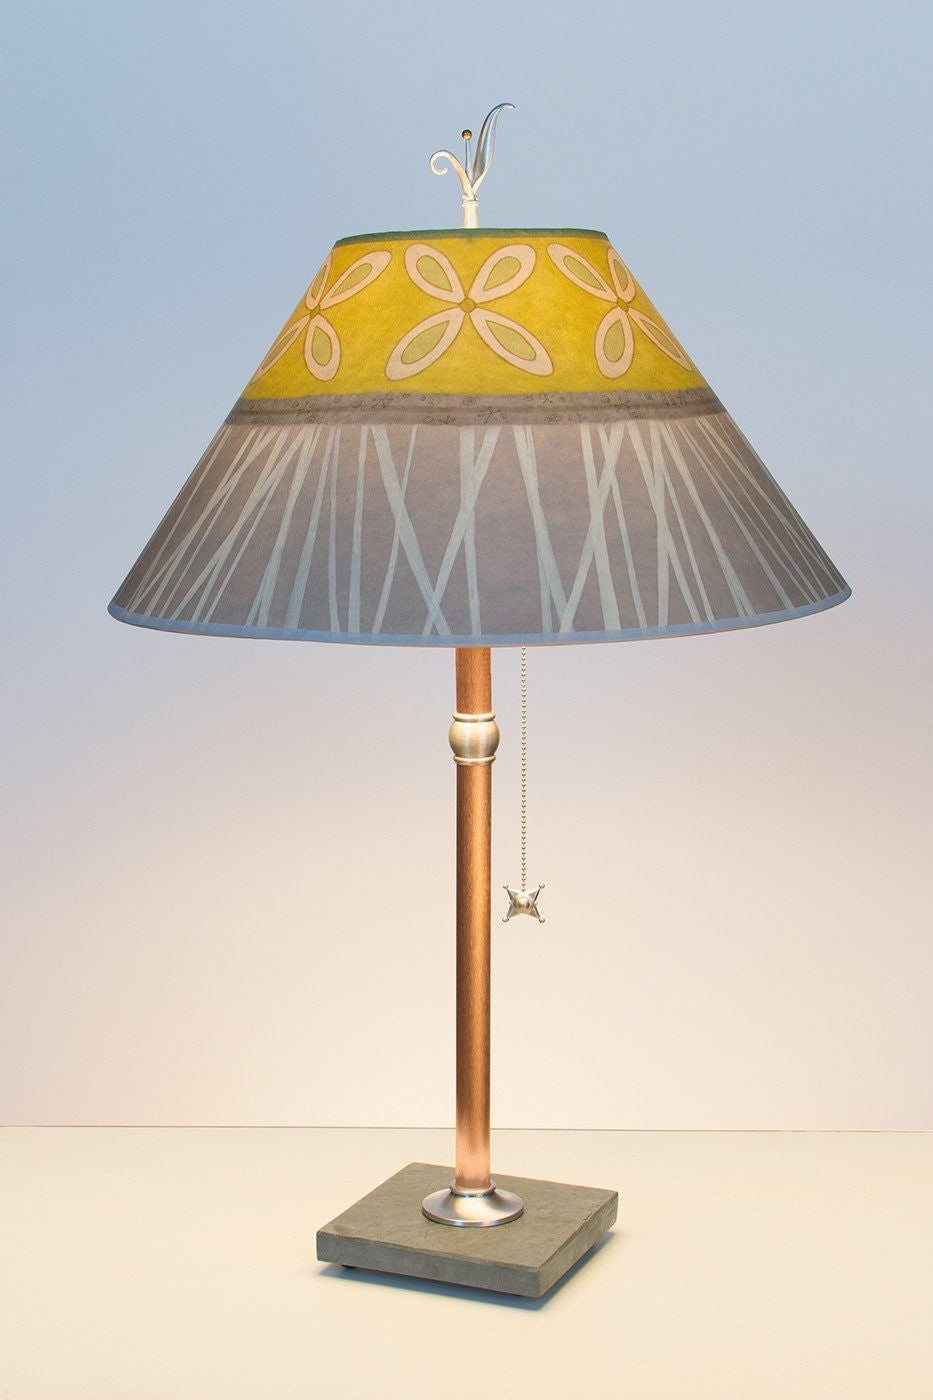 Copper Table Lamp On Vermont Slate With Large Conical Shade In Kiwi